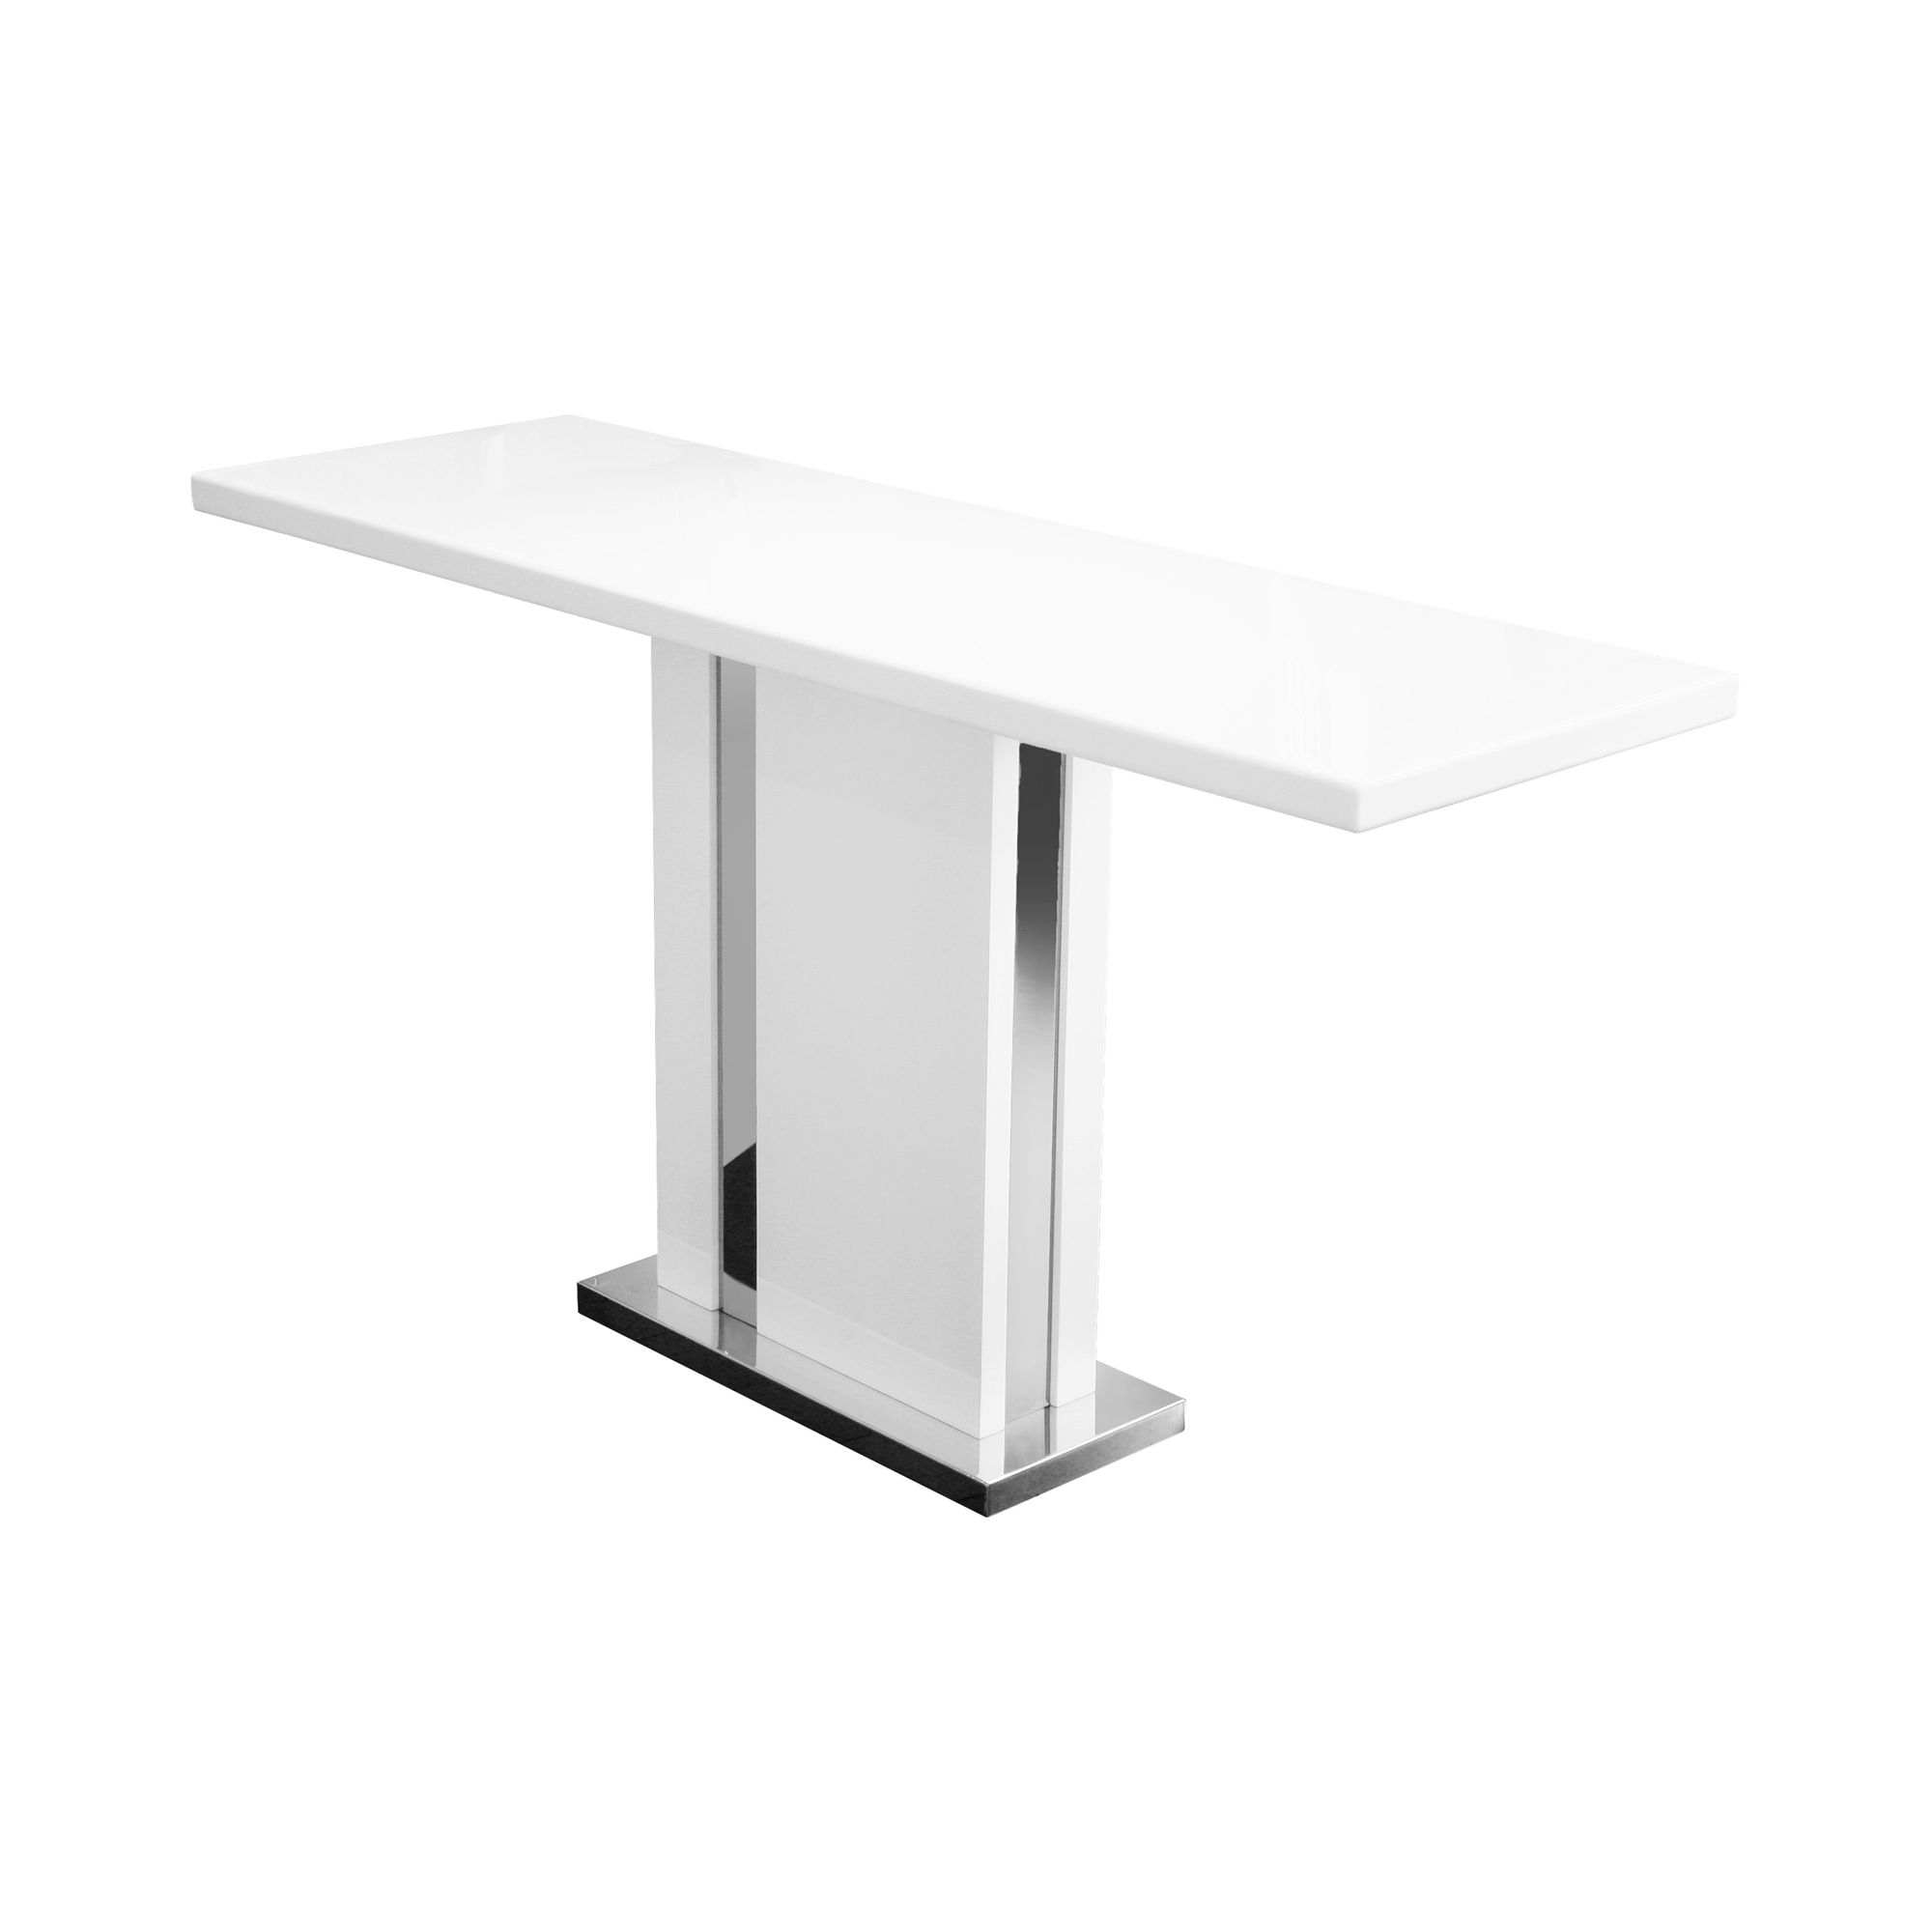 Home Essence Composite Console Table at Tesco Direct